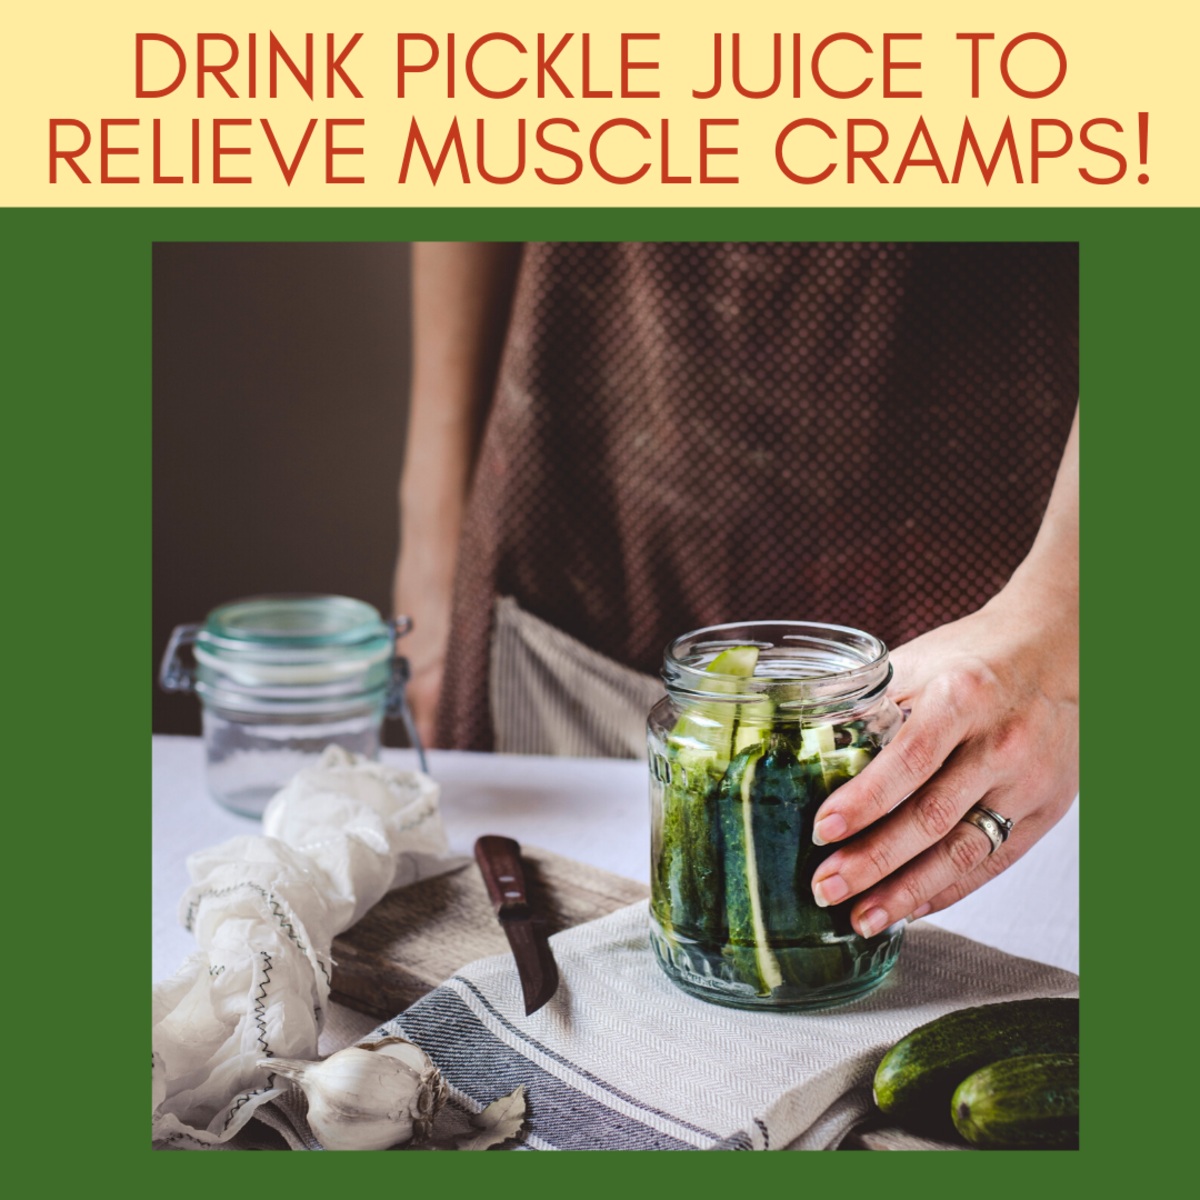 Attention Athletes! Drink Pickle Juice to Relieve Muscle Cramps!